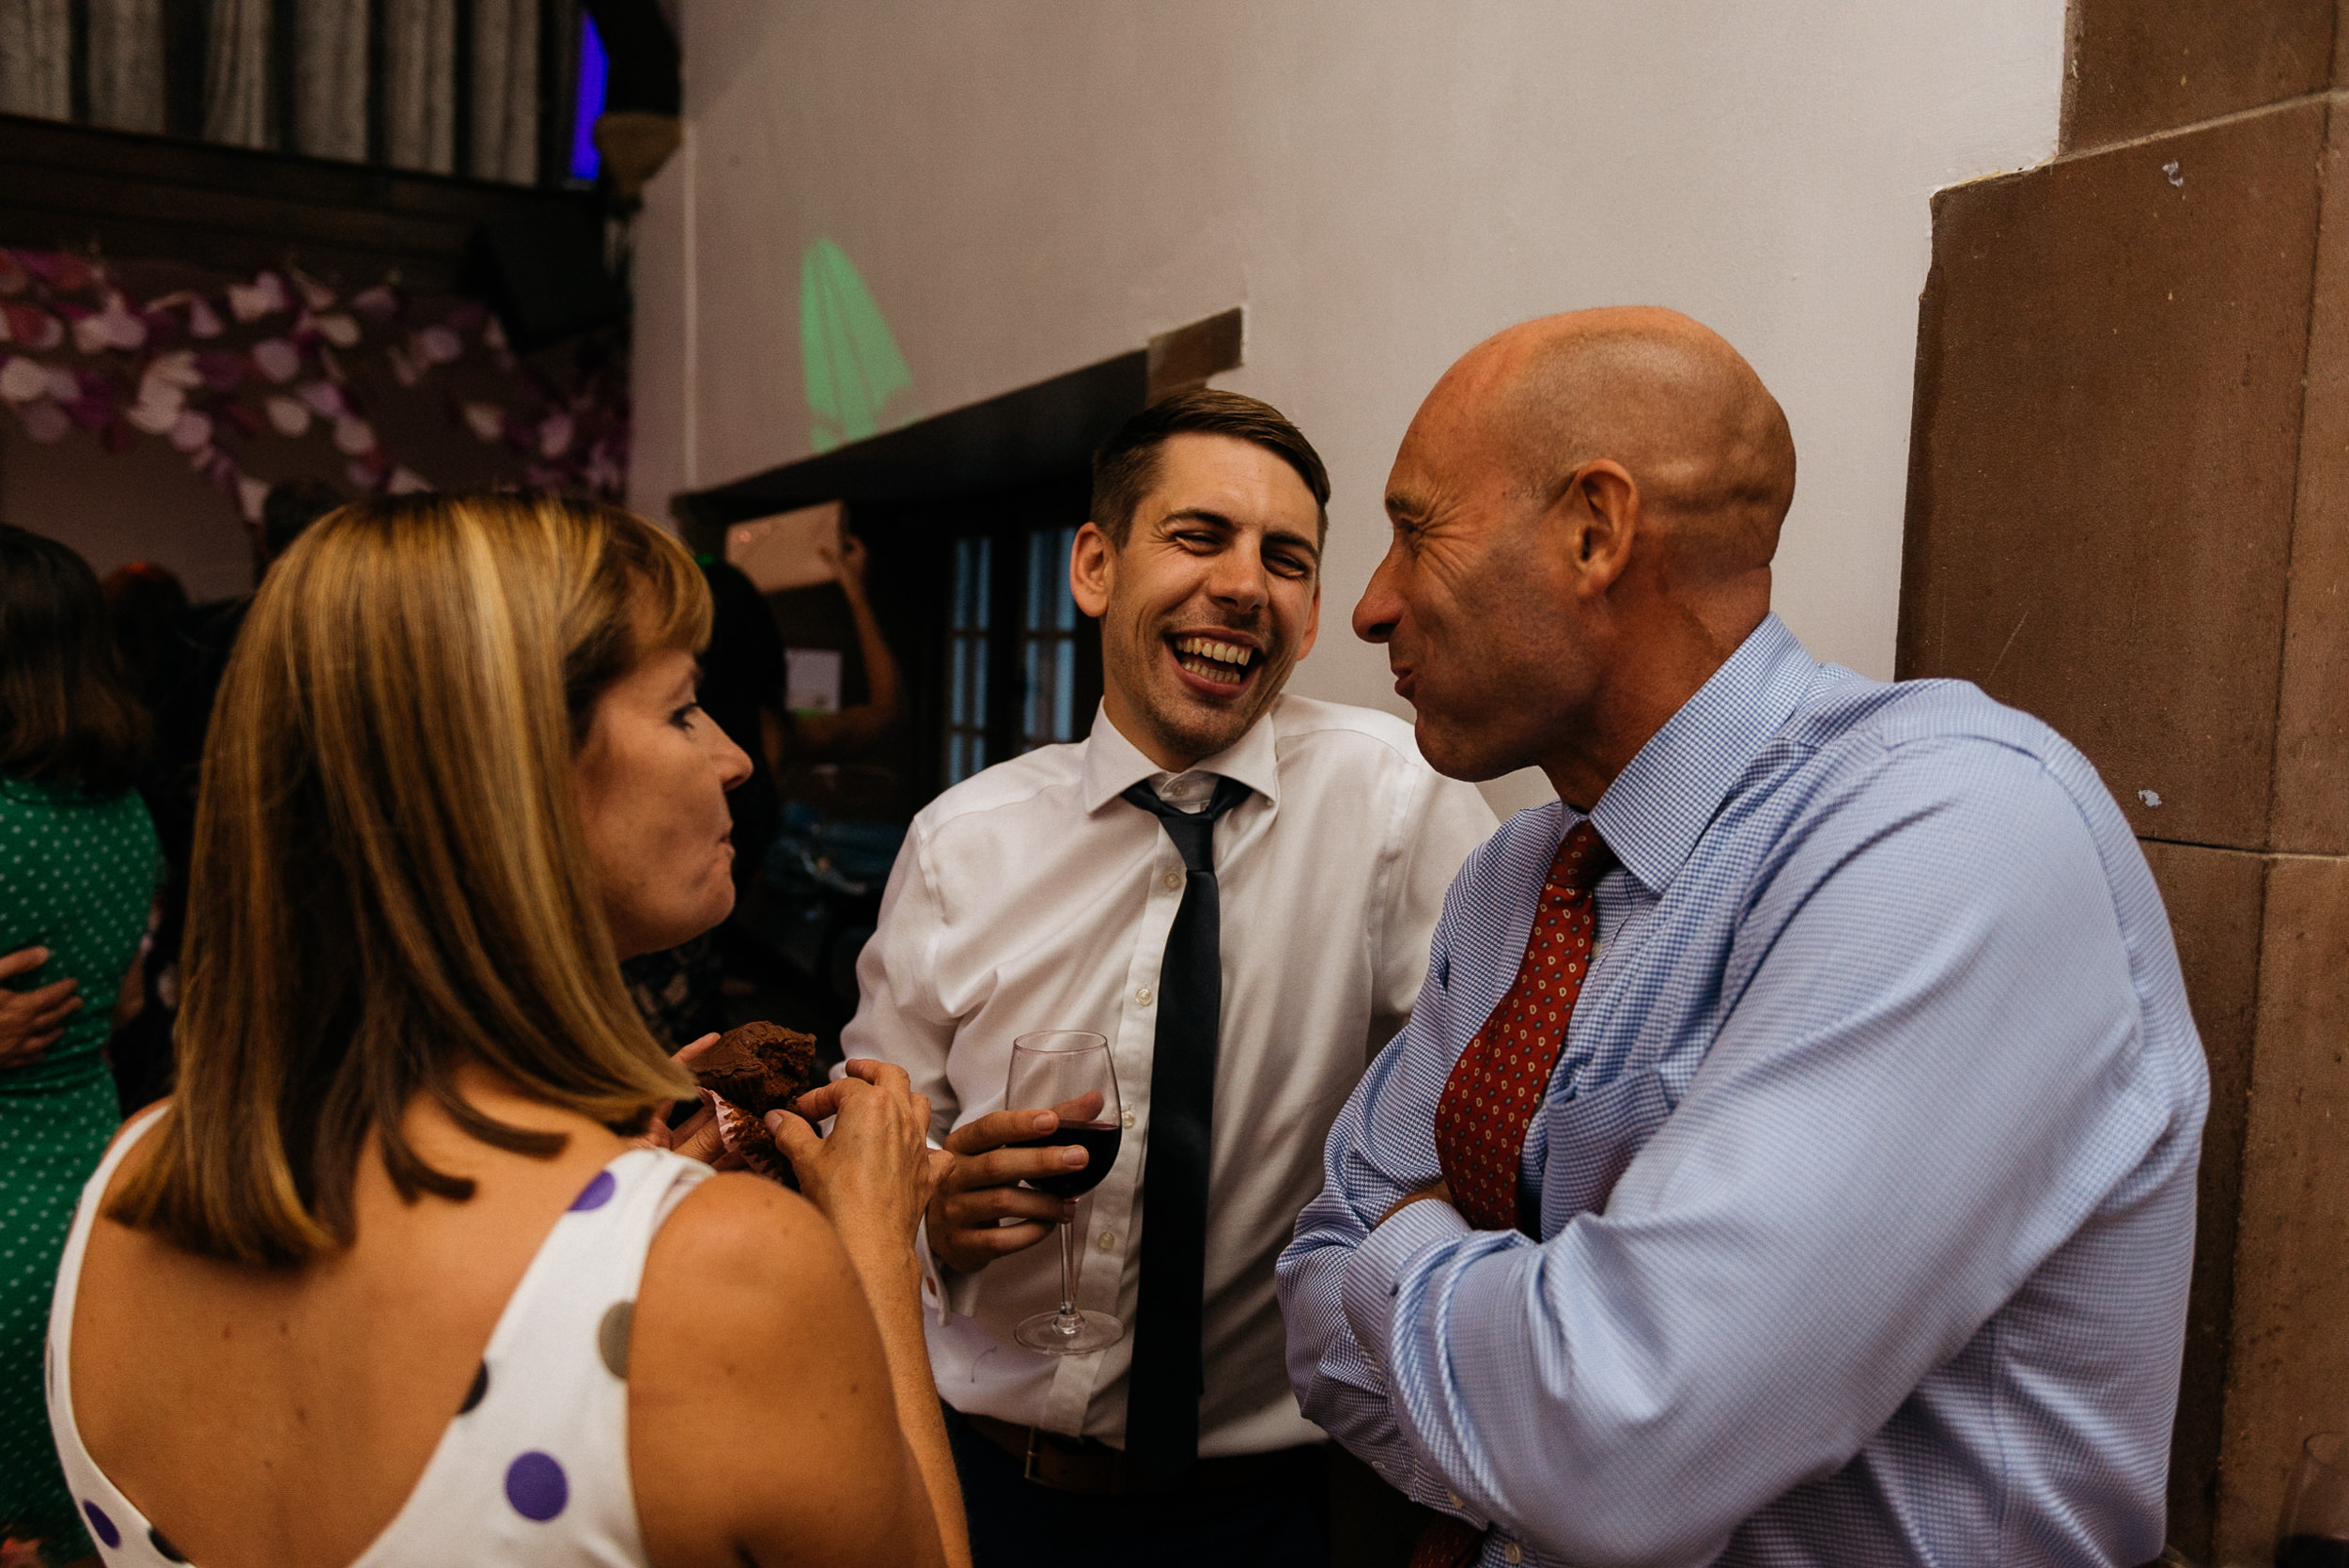 wedding guests sharing a joke.